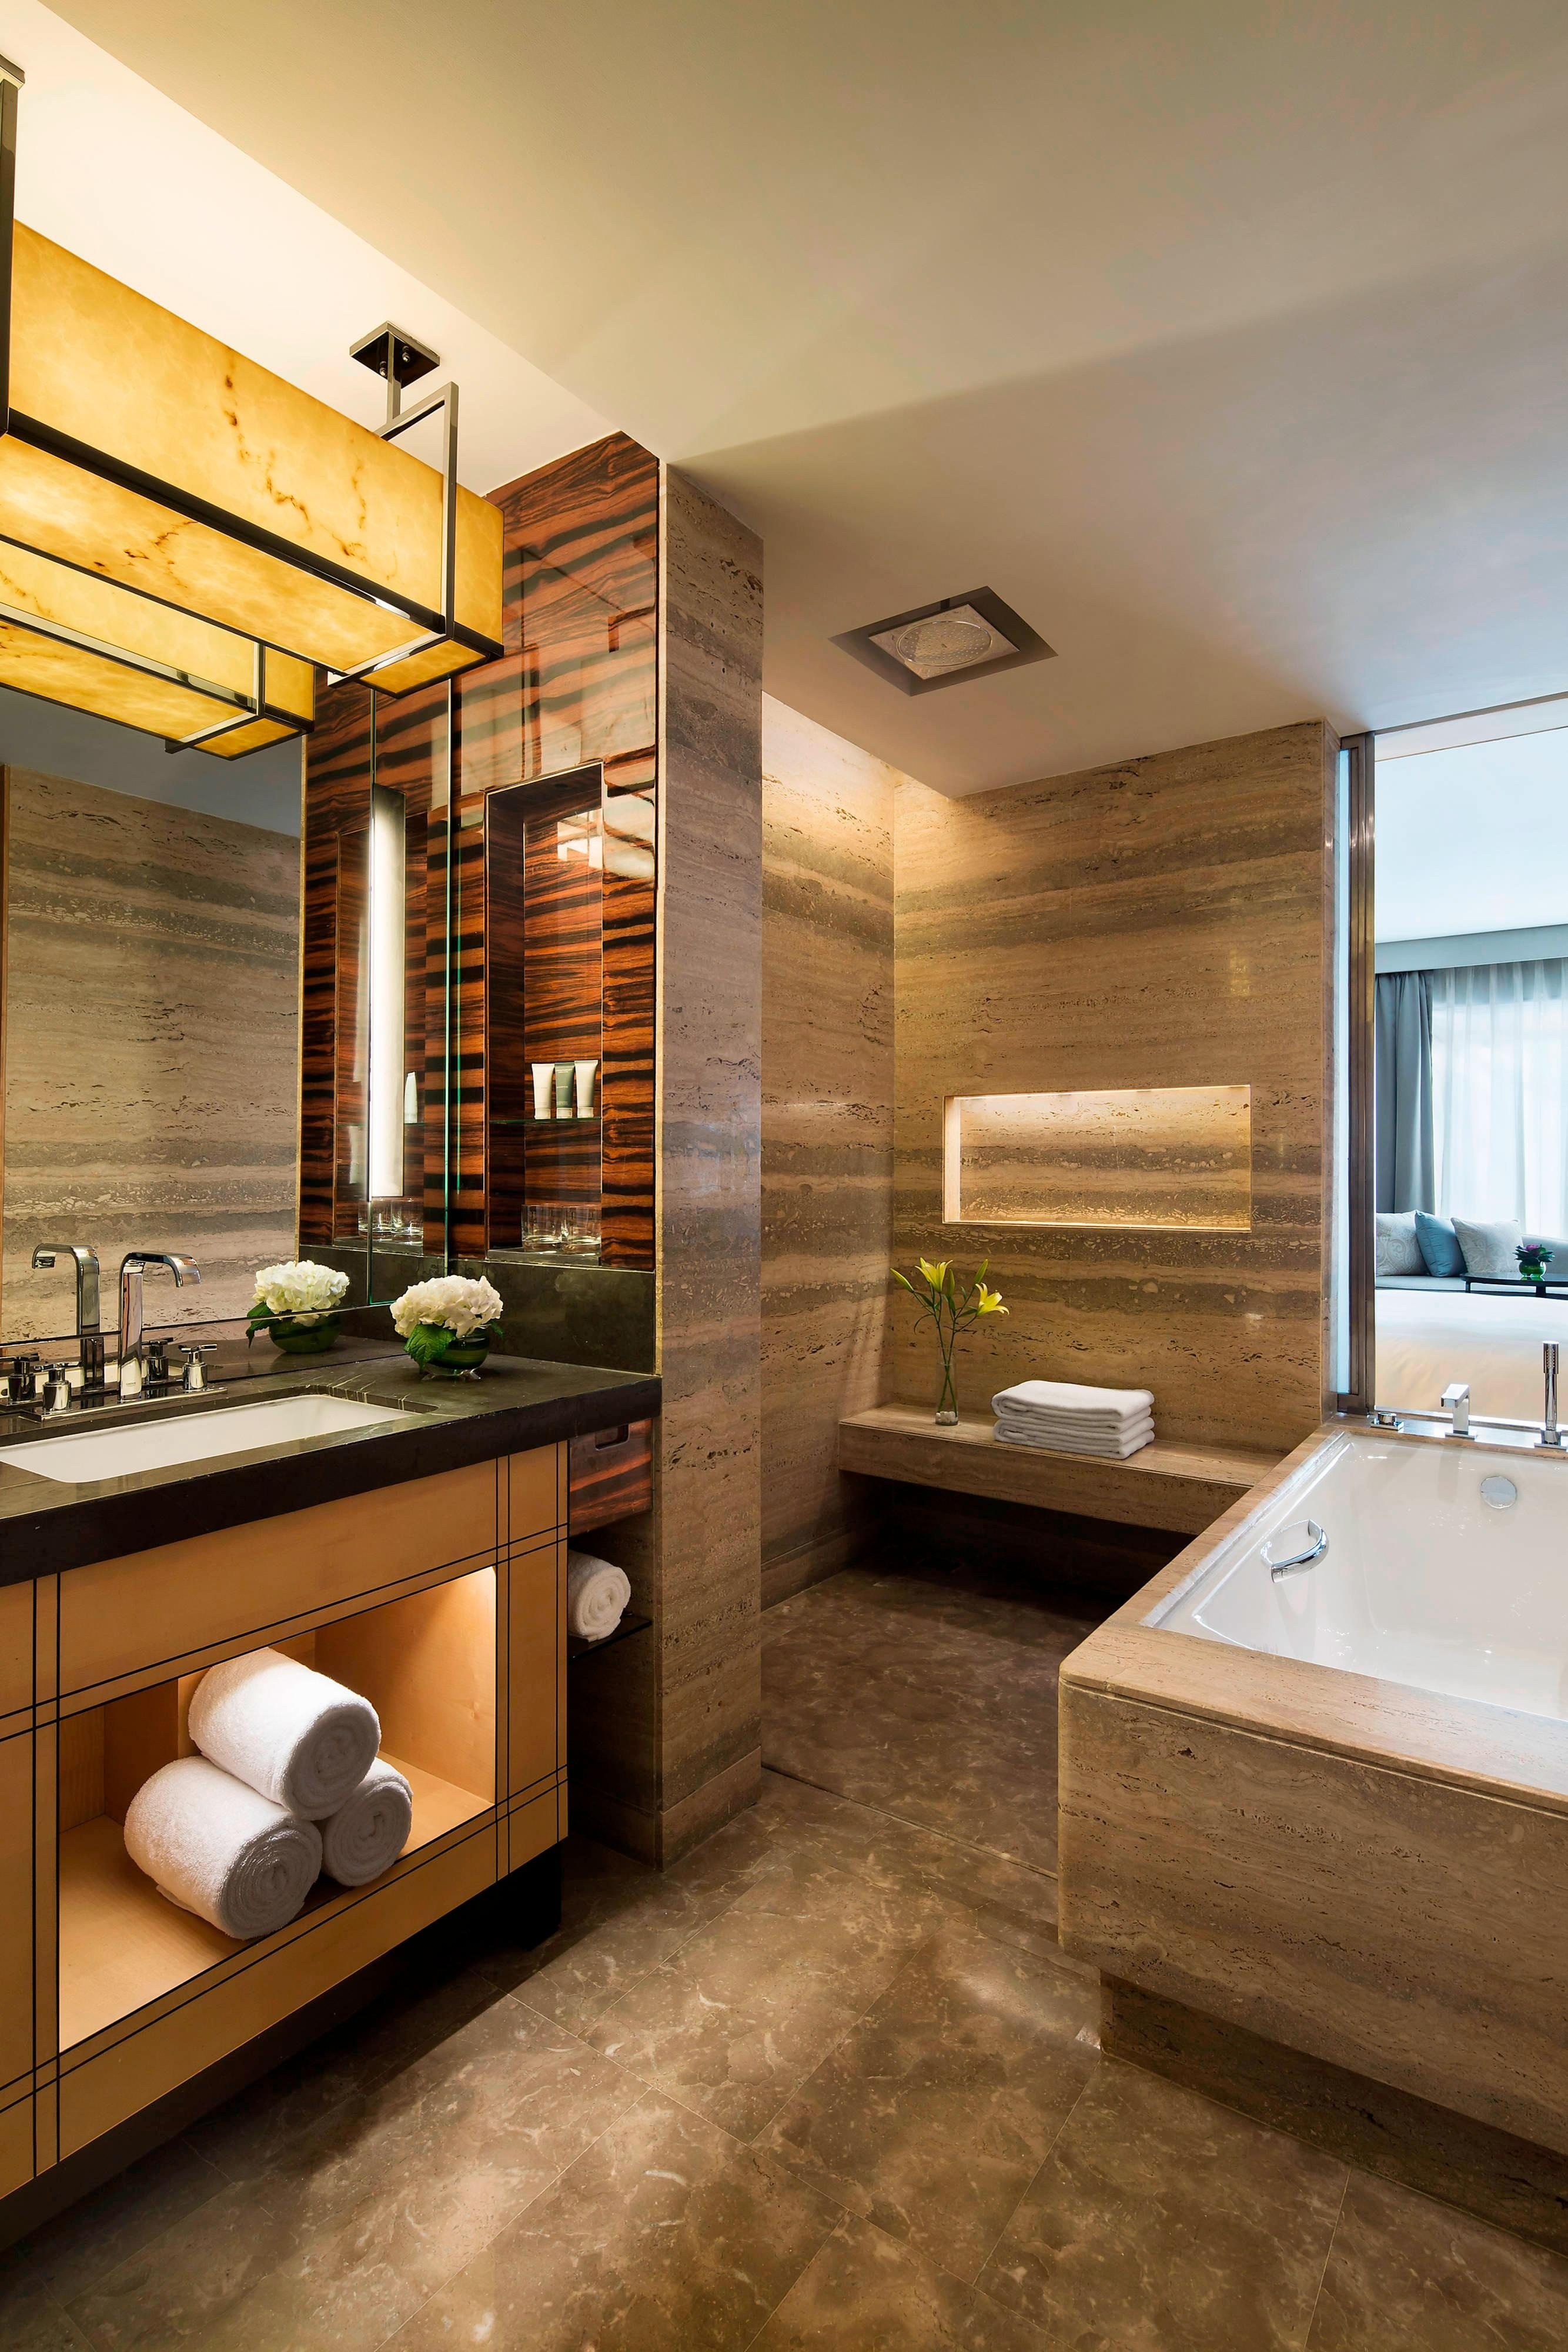 New Delhi hotel luxury bathroom